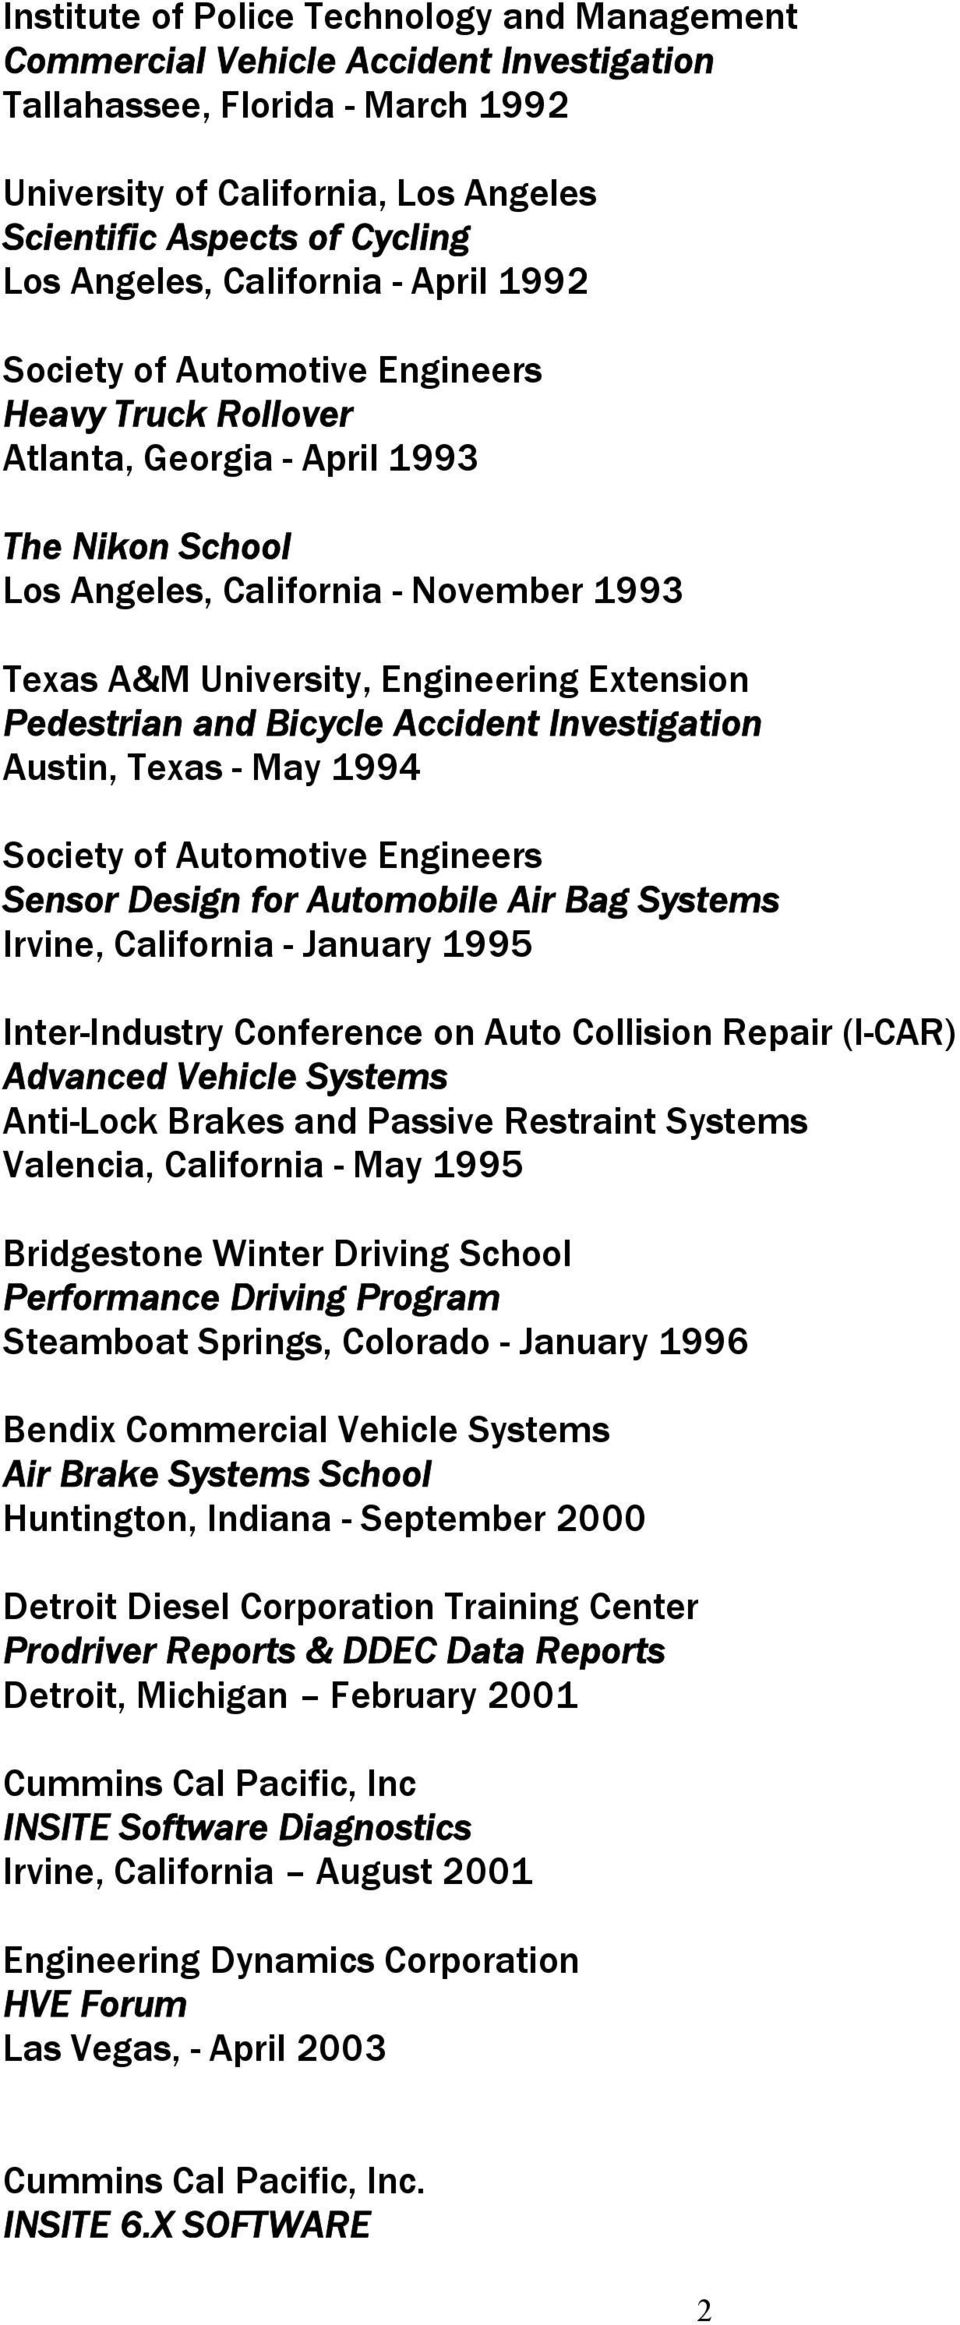 Engineering Extension Pedestrian and Bicycle Accident Investigation Austin, Texas - May 1994 Society of Automotive Engineers Sensor Design for Automobile Air Bag Systems Irvine, California - January